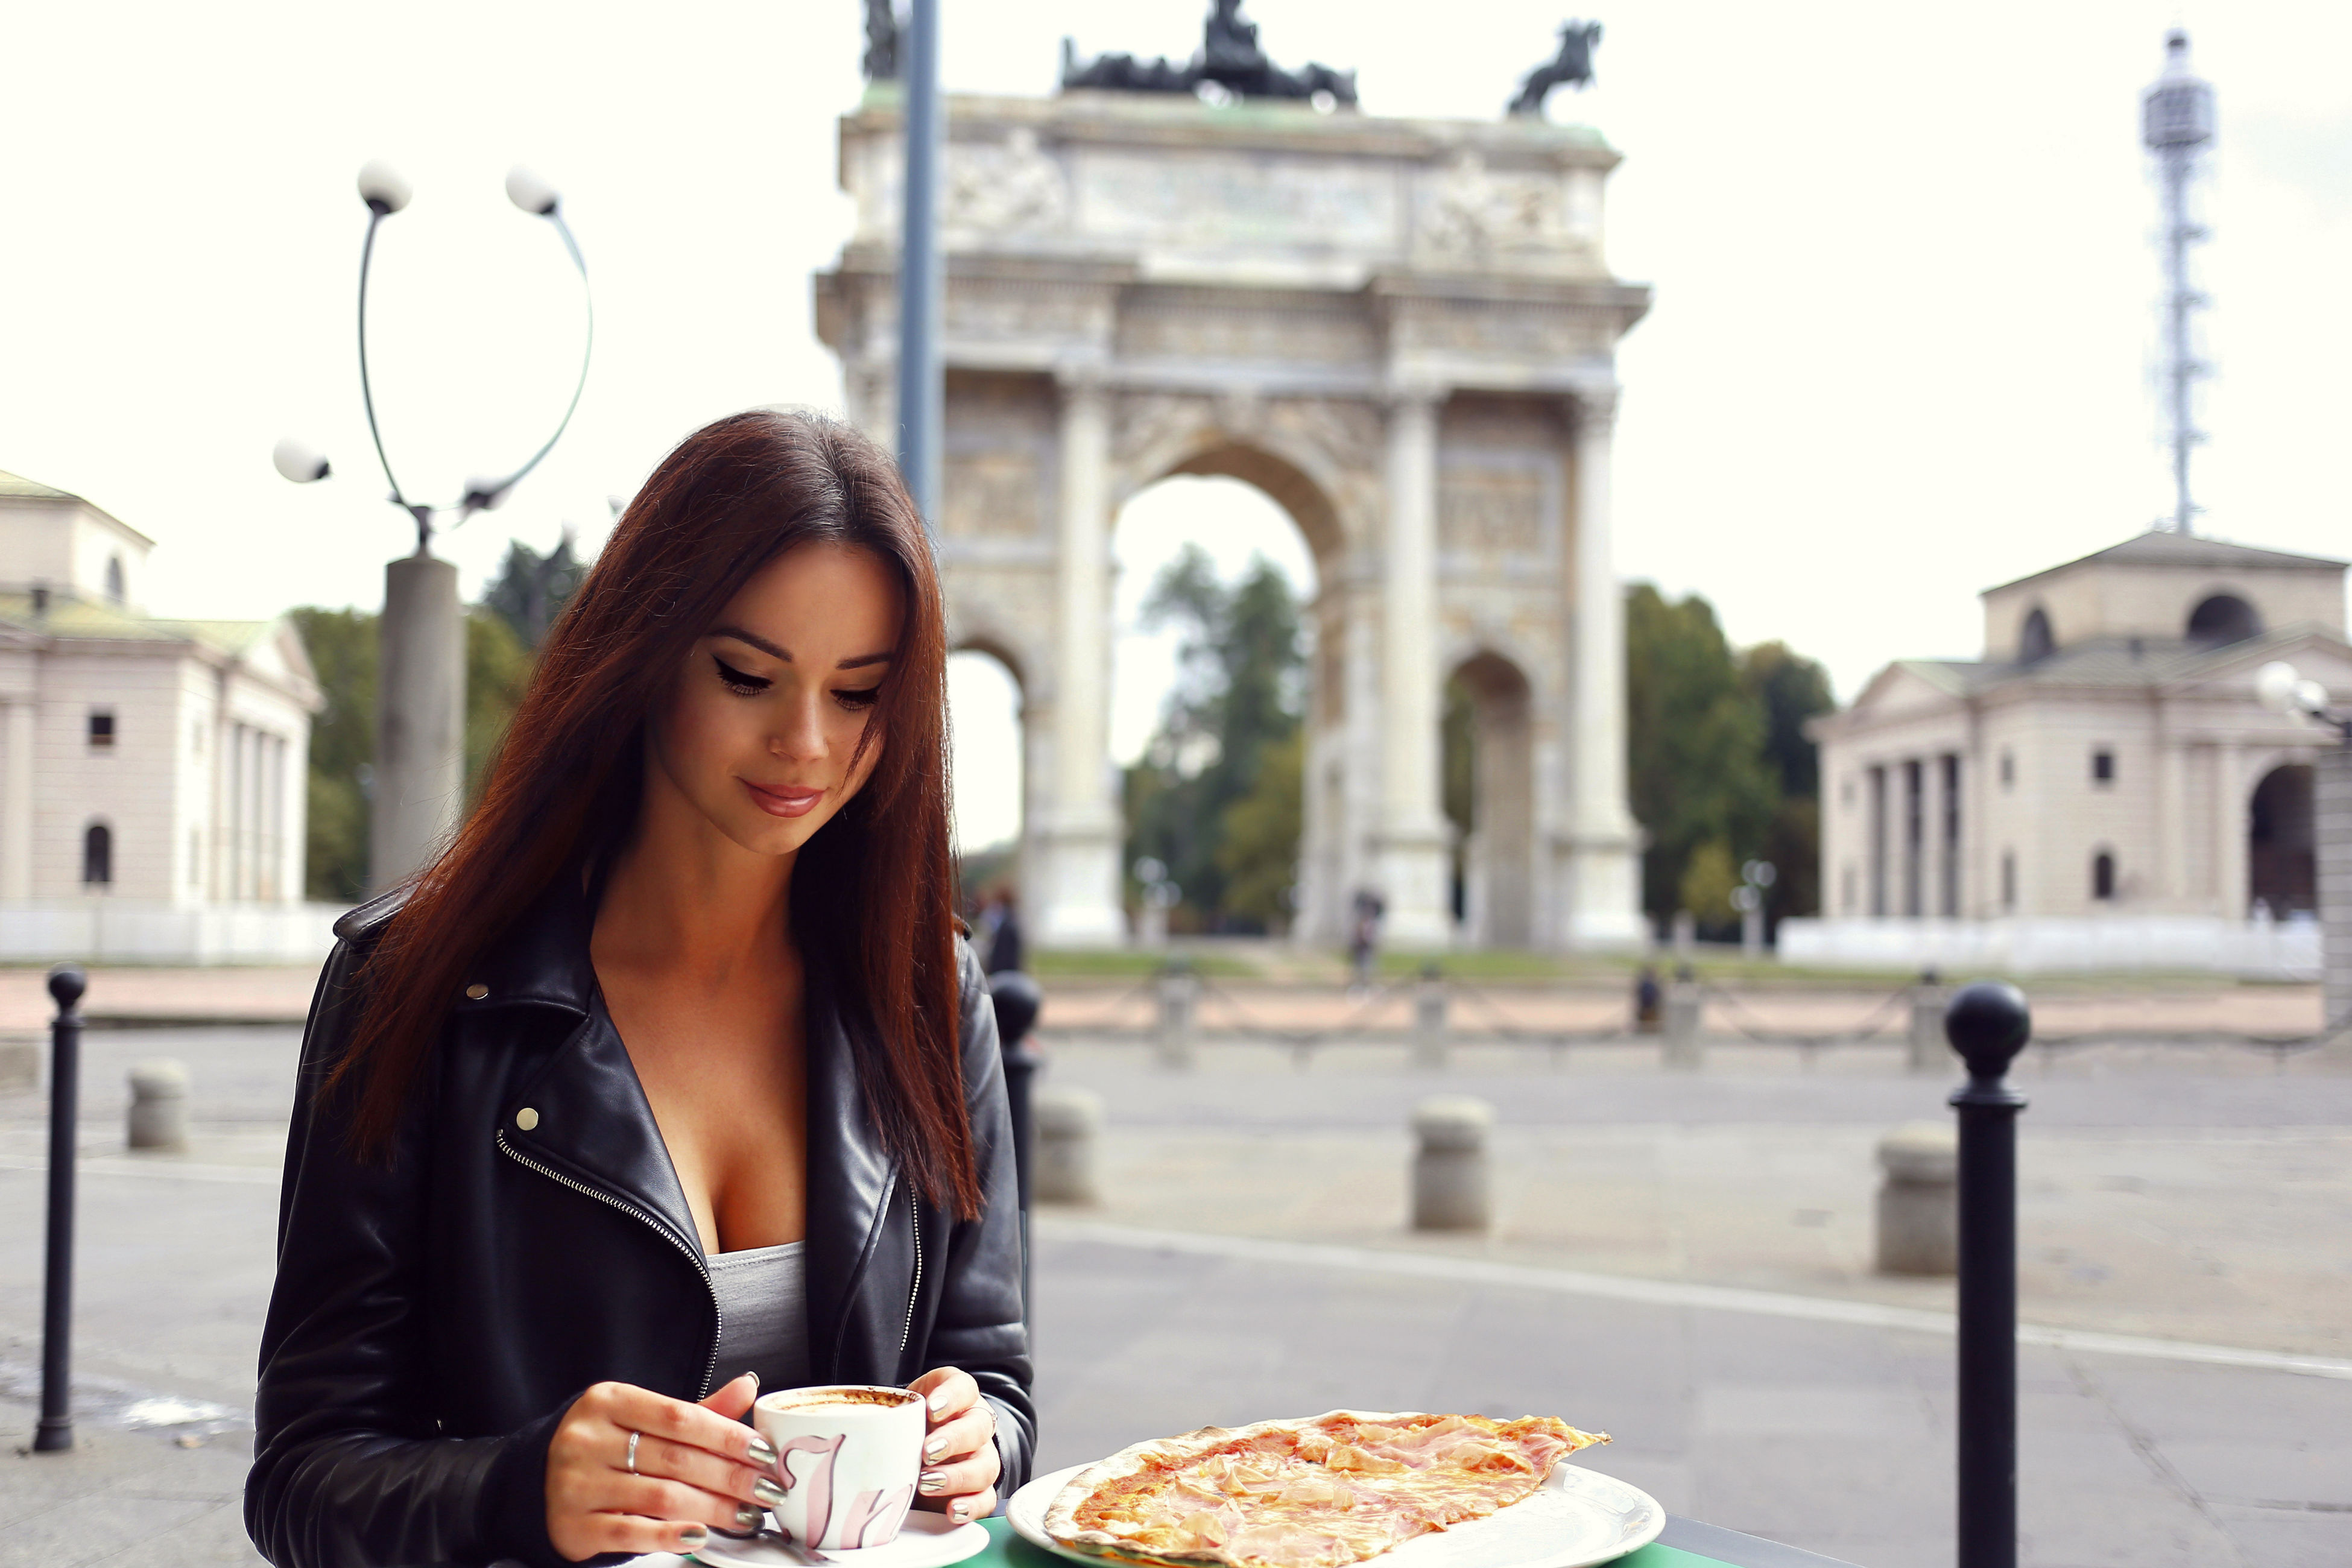 Anna Mour Arch Of Peace Architecture Architecture Beautiful People City City Life Coffee Italy Lifestyles Milano One Person One Woman Only One Young Woman Only Only Women Outdoors People Tourism Tourist Travel Travel Destinations Vacations Women Young Adult Young Women